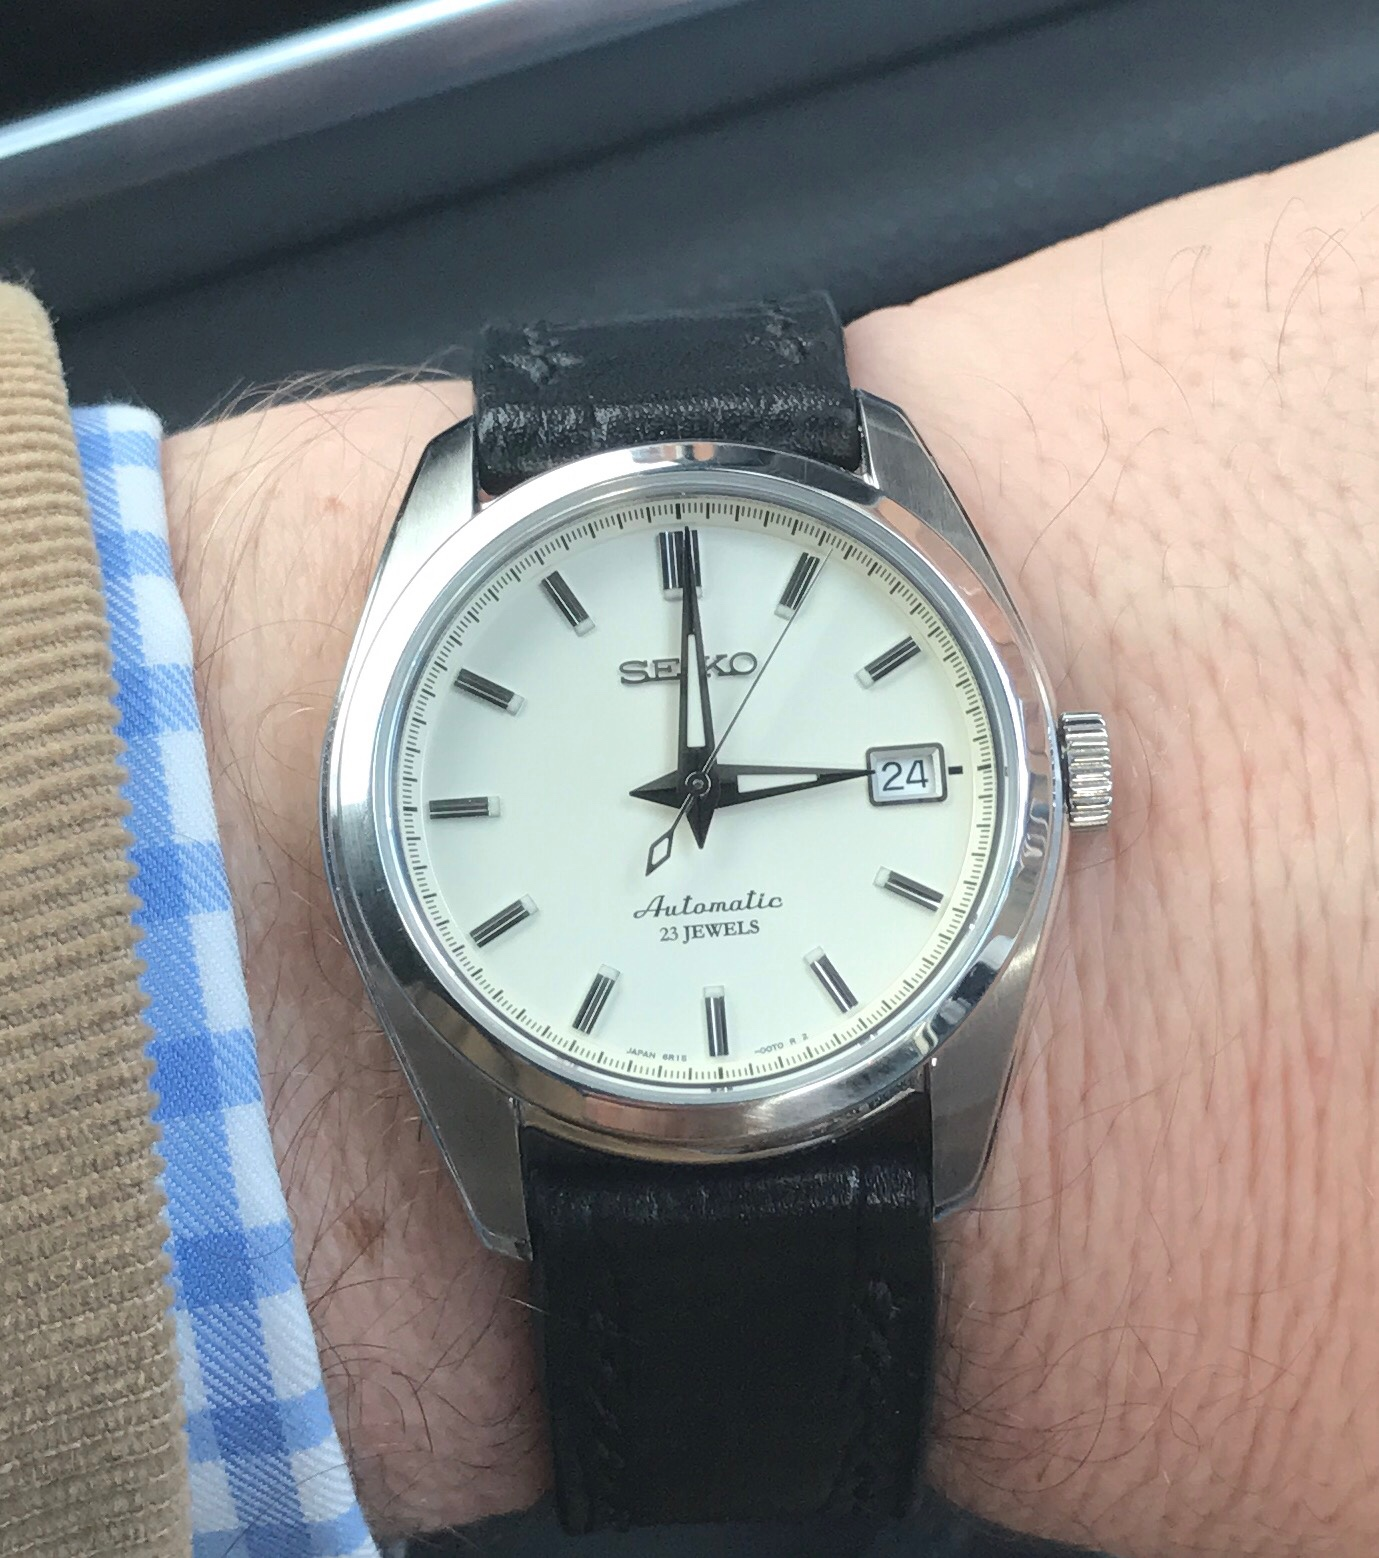 Seiko Sarb 035 Would You Buy It Watch Discussion Forum The